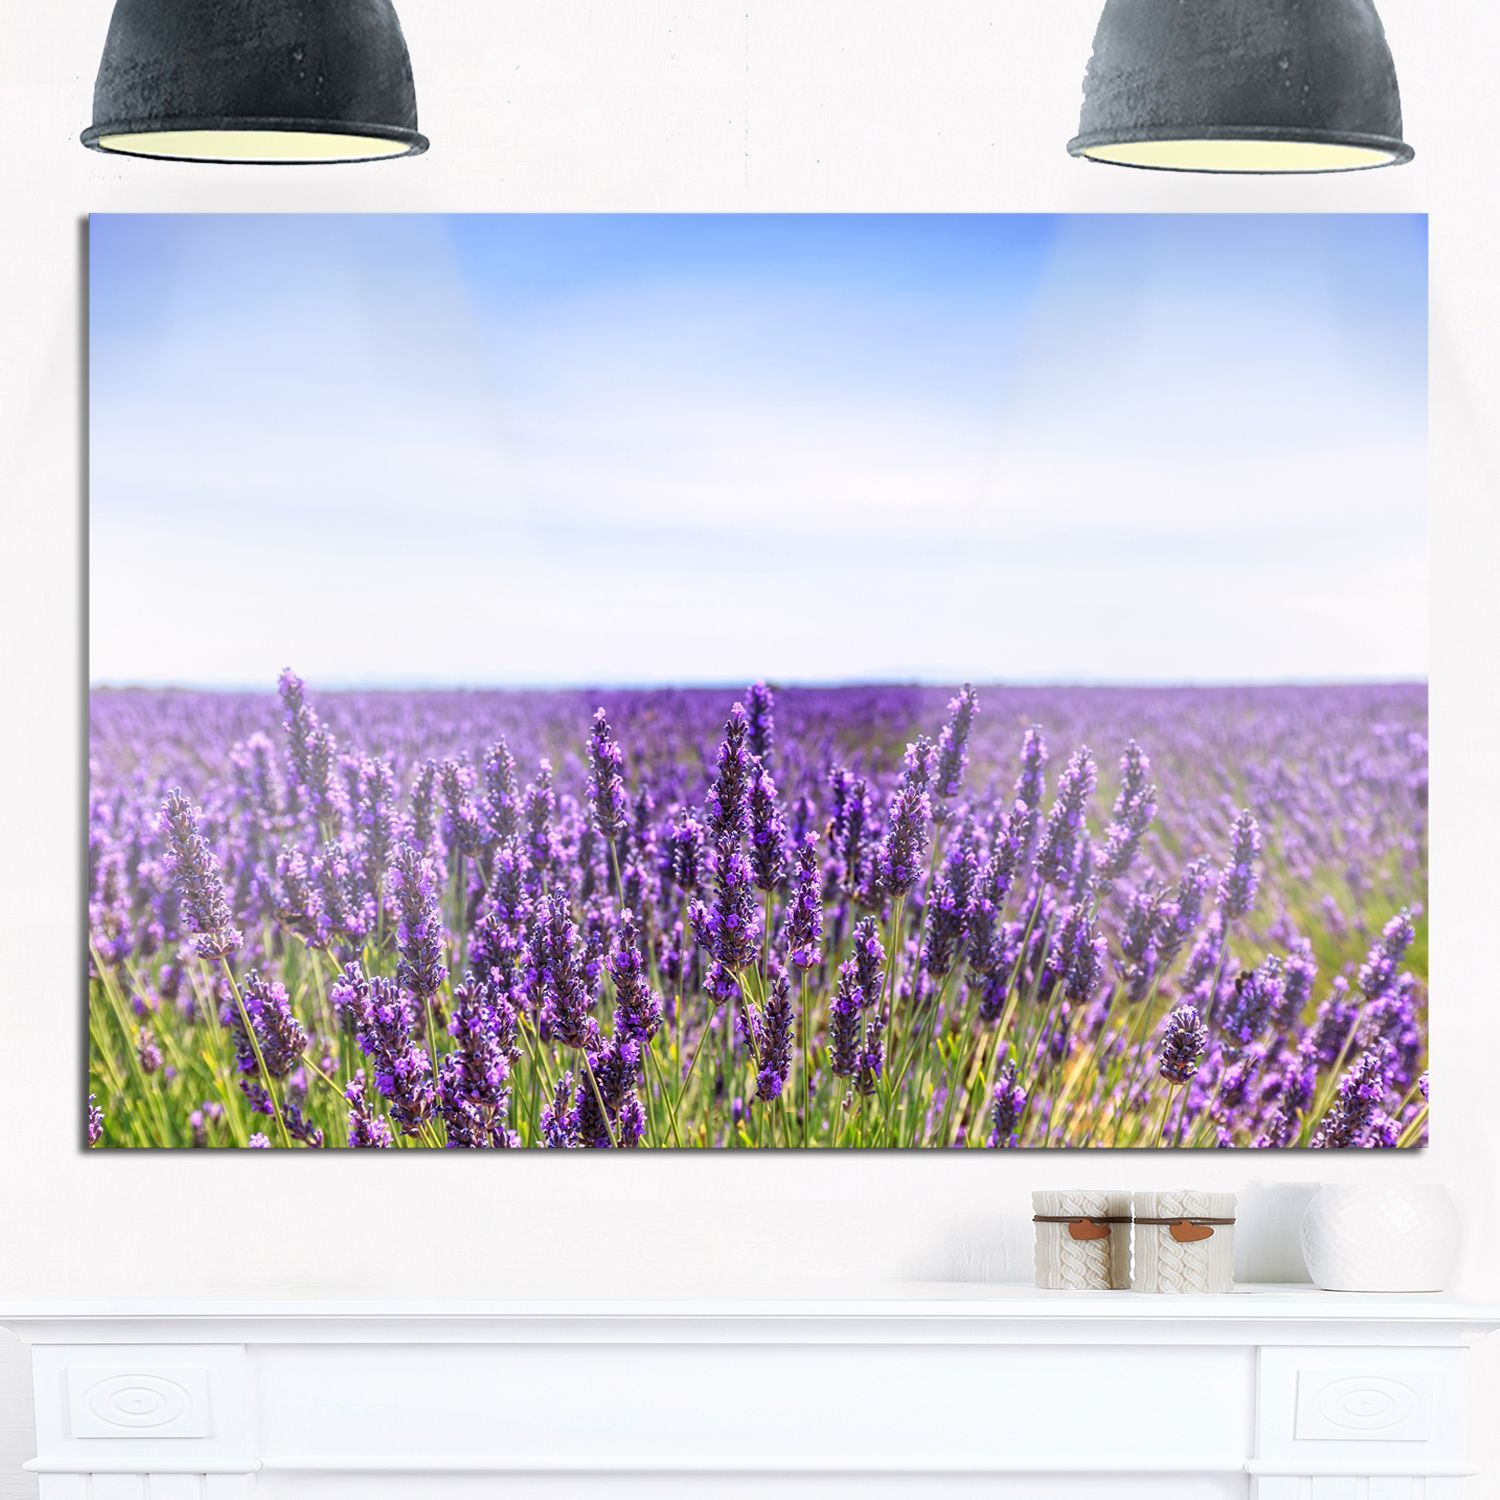 Close View of Lavender Flower Field - Oversized Landscape Glossy Metal Wall Art